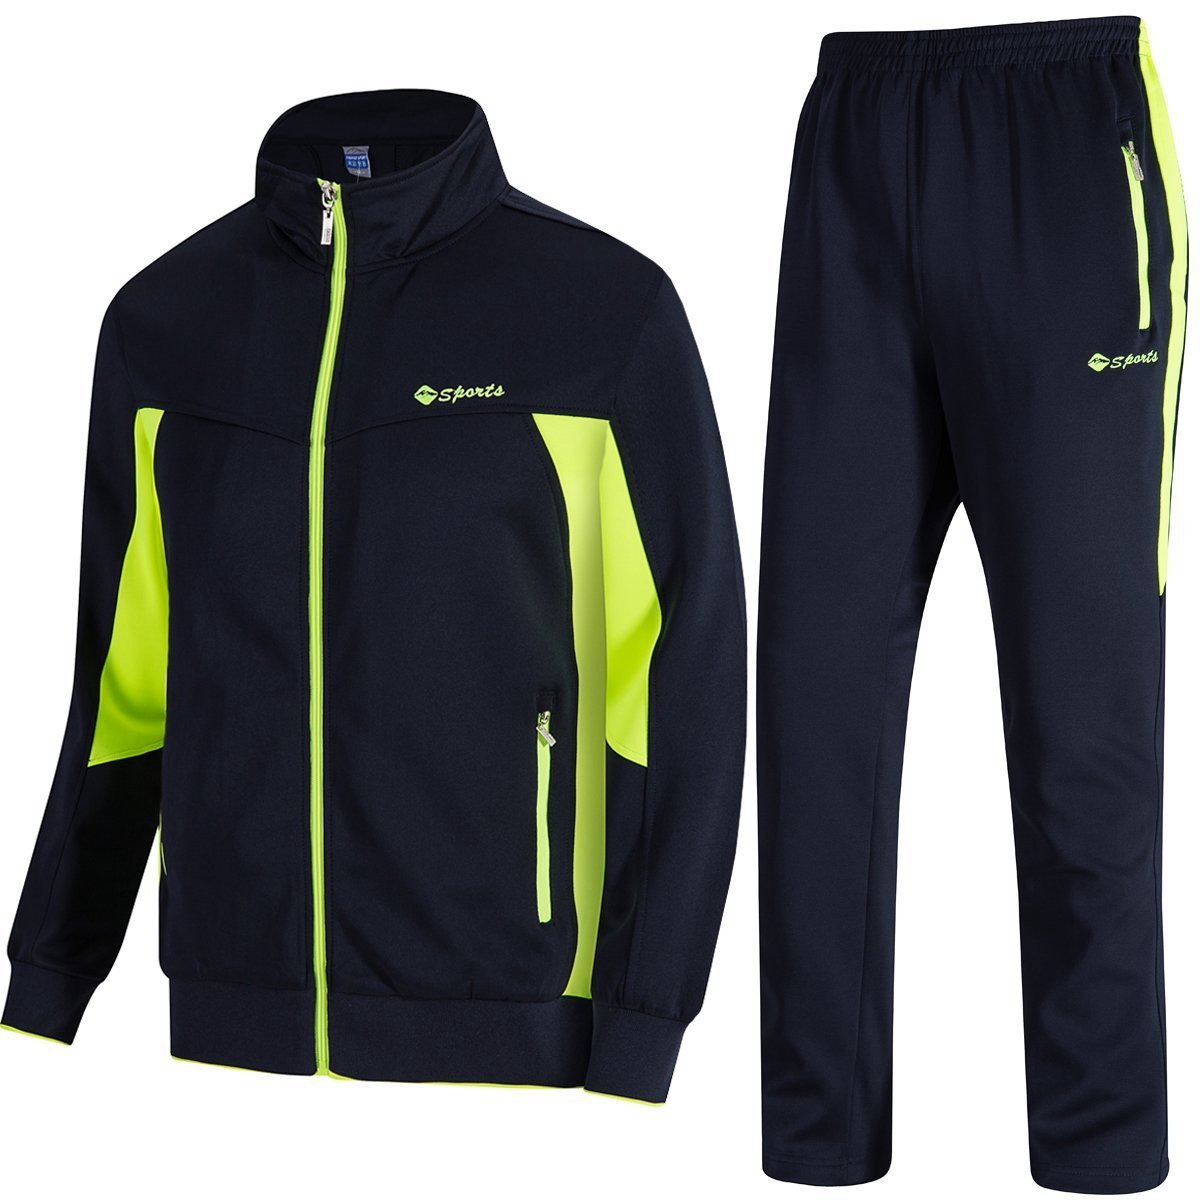 TBMPOY Men's Essential Running Top & Bottoms Set Long Sleeve Training Wear(Navy Fluorescent Green,US XL)